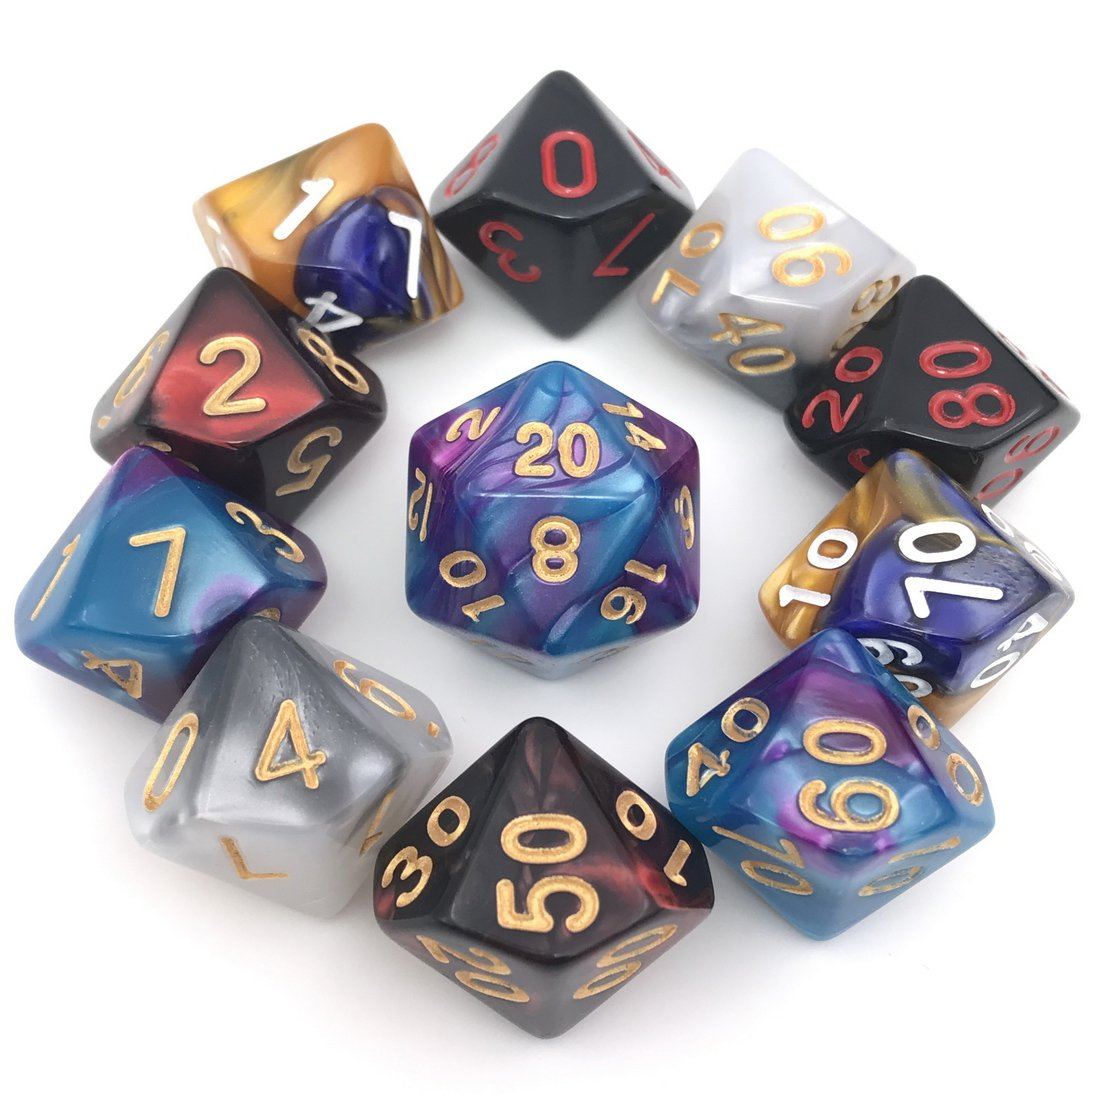 Amazon Com Assorted Polyhedral Dice Set With Black Drawstring Bag 5 Complete Dice Sets Of D4 D6 D8 D10 D D12 D20 Great For Dungeons And Dragons Dnd Rpg Mtg Games Toys